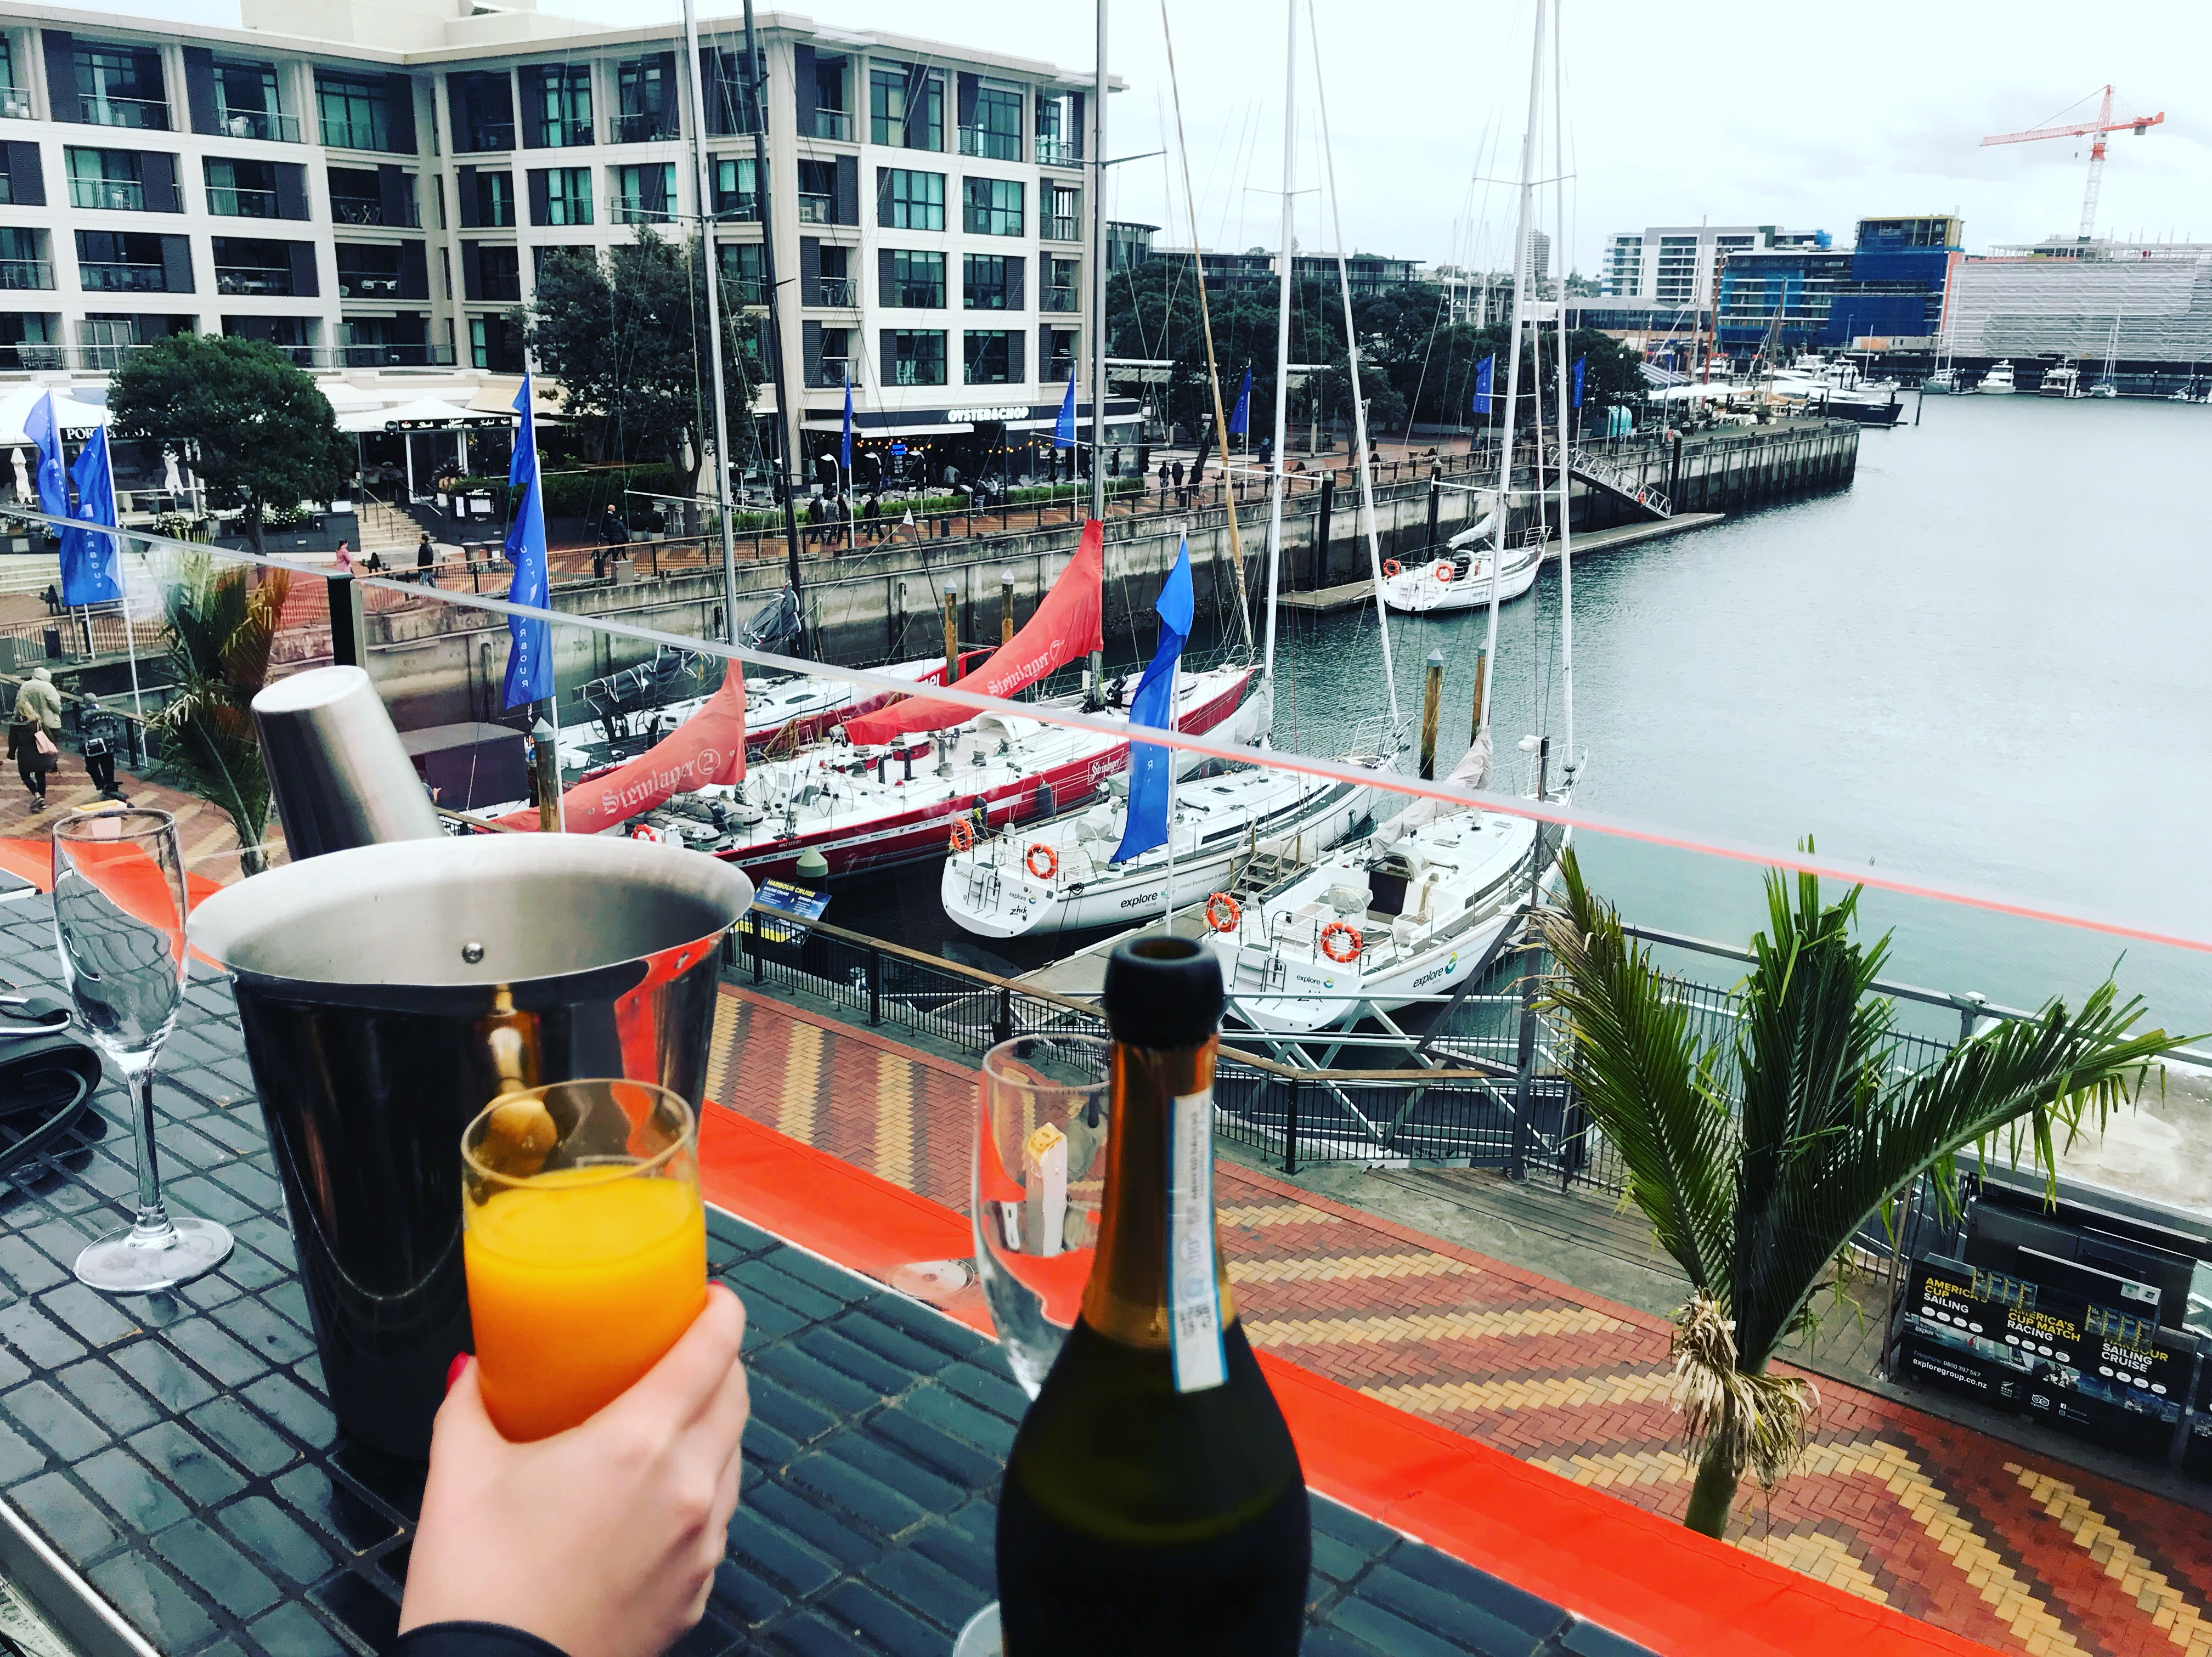 Dr Rudi's Rooftop Bar, Auckland